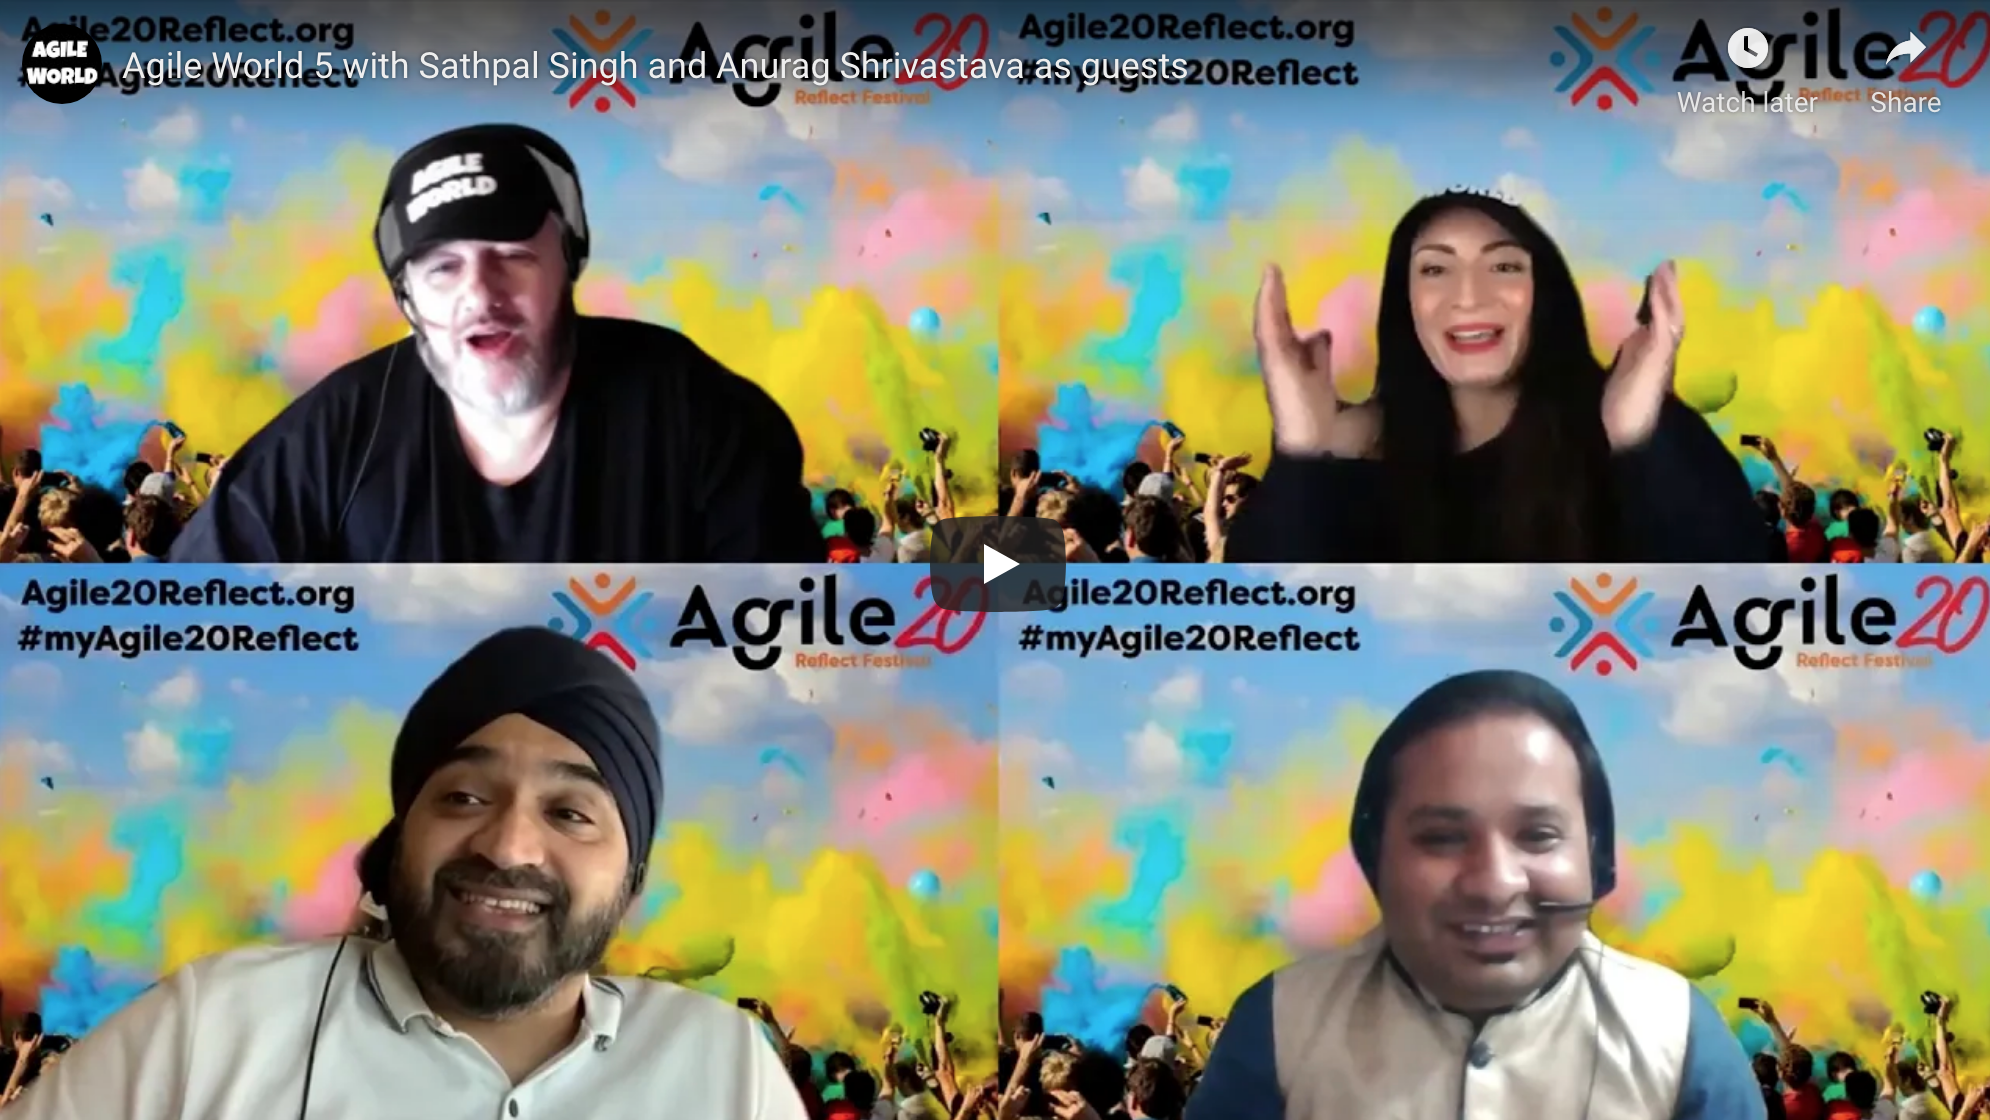 Agile World S1 E5 Sabrina C E Bruce and Karl Smith and guests Sathpal Singh and Anurag Shrivastava